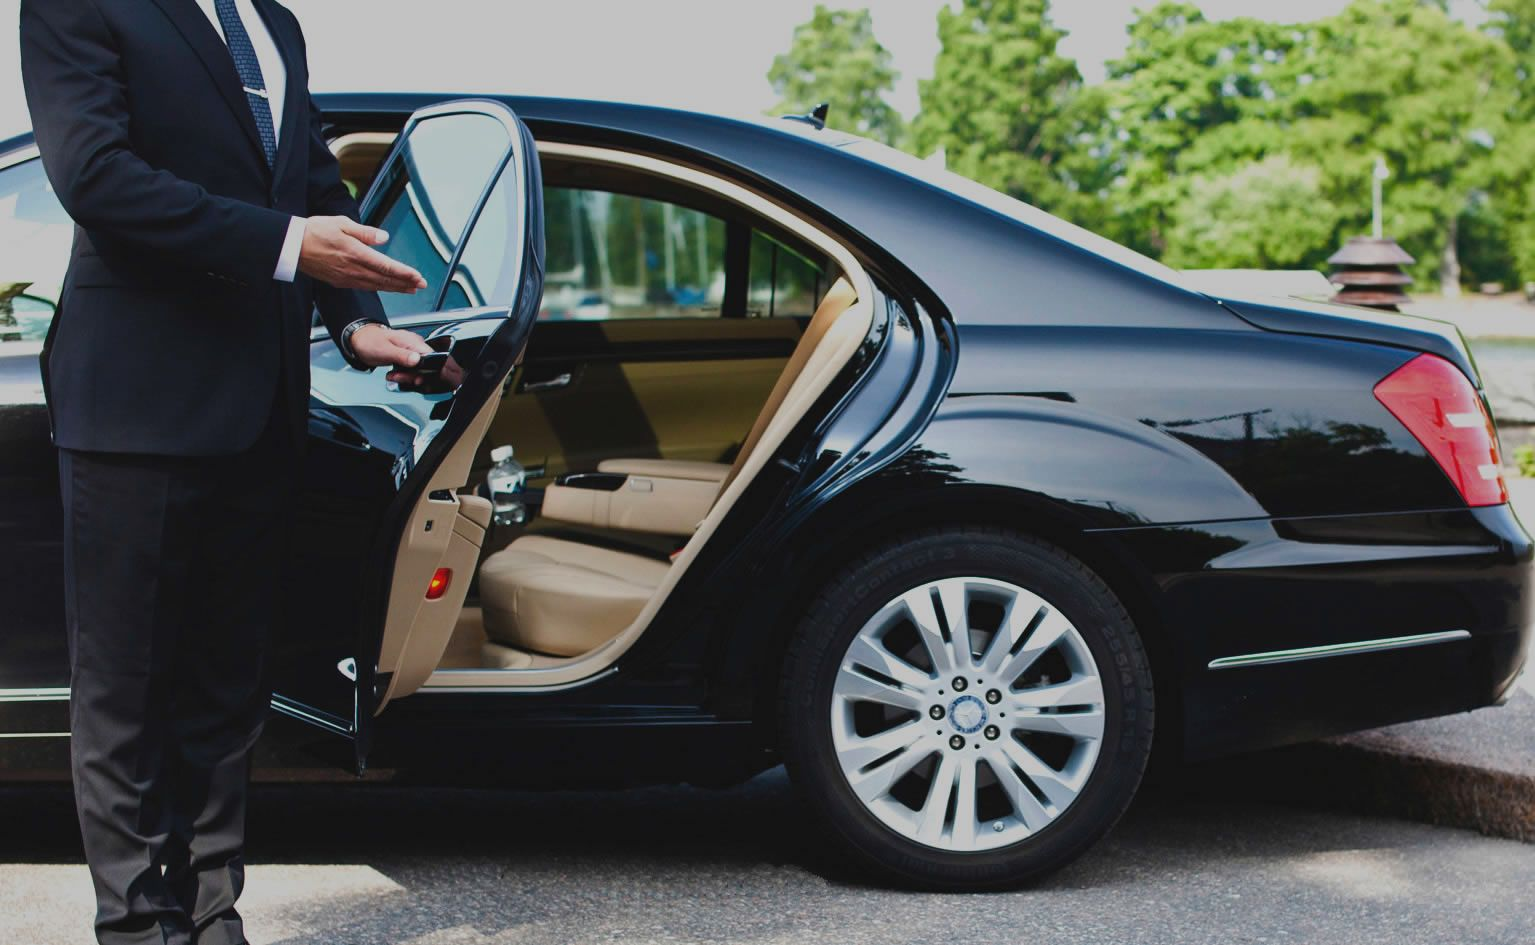 Get 20 Off Your First Ride At Uber Black Car Service Airport Car Service Chauffeur Service